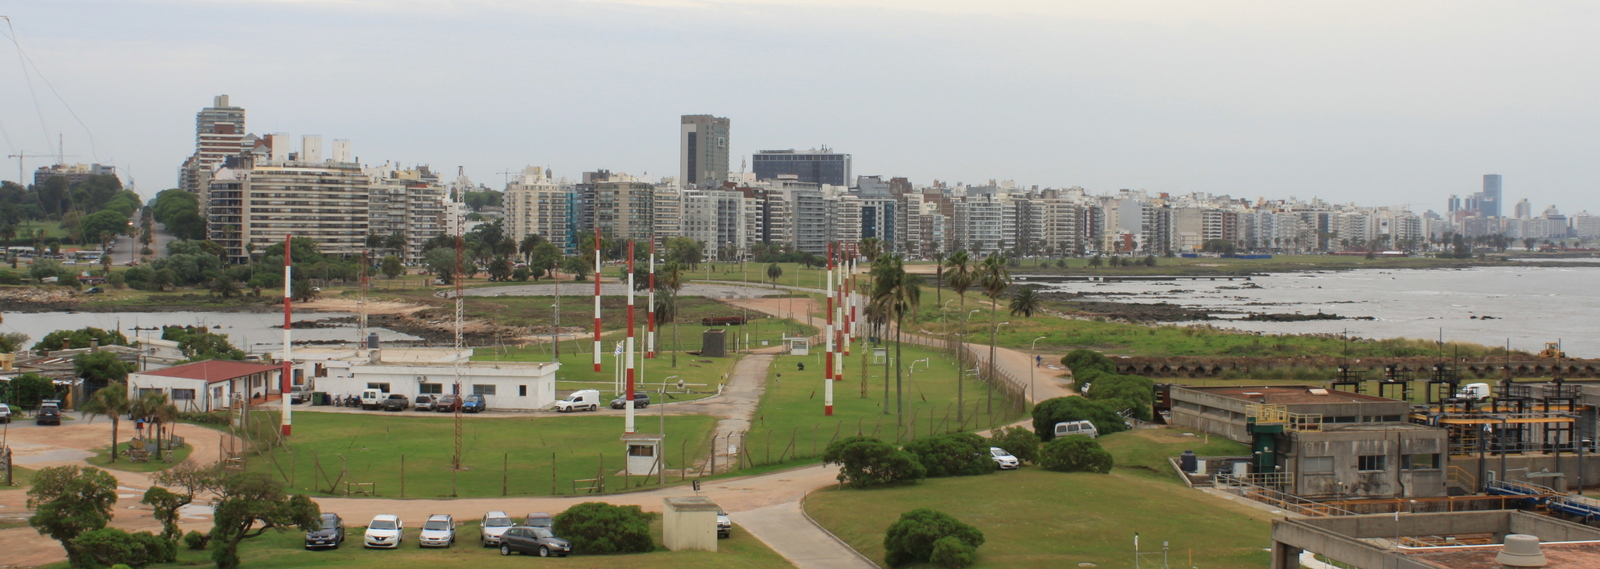 Montevideo, View from Punta Brava Lighthouse